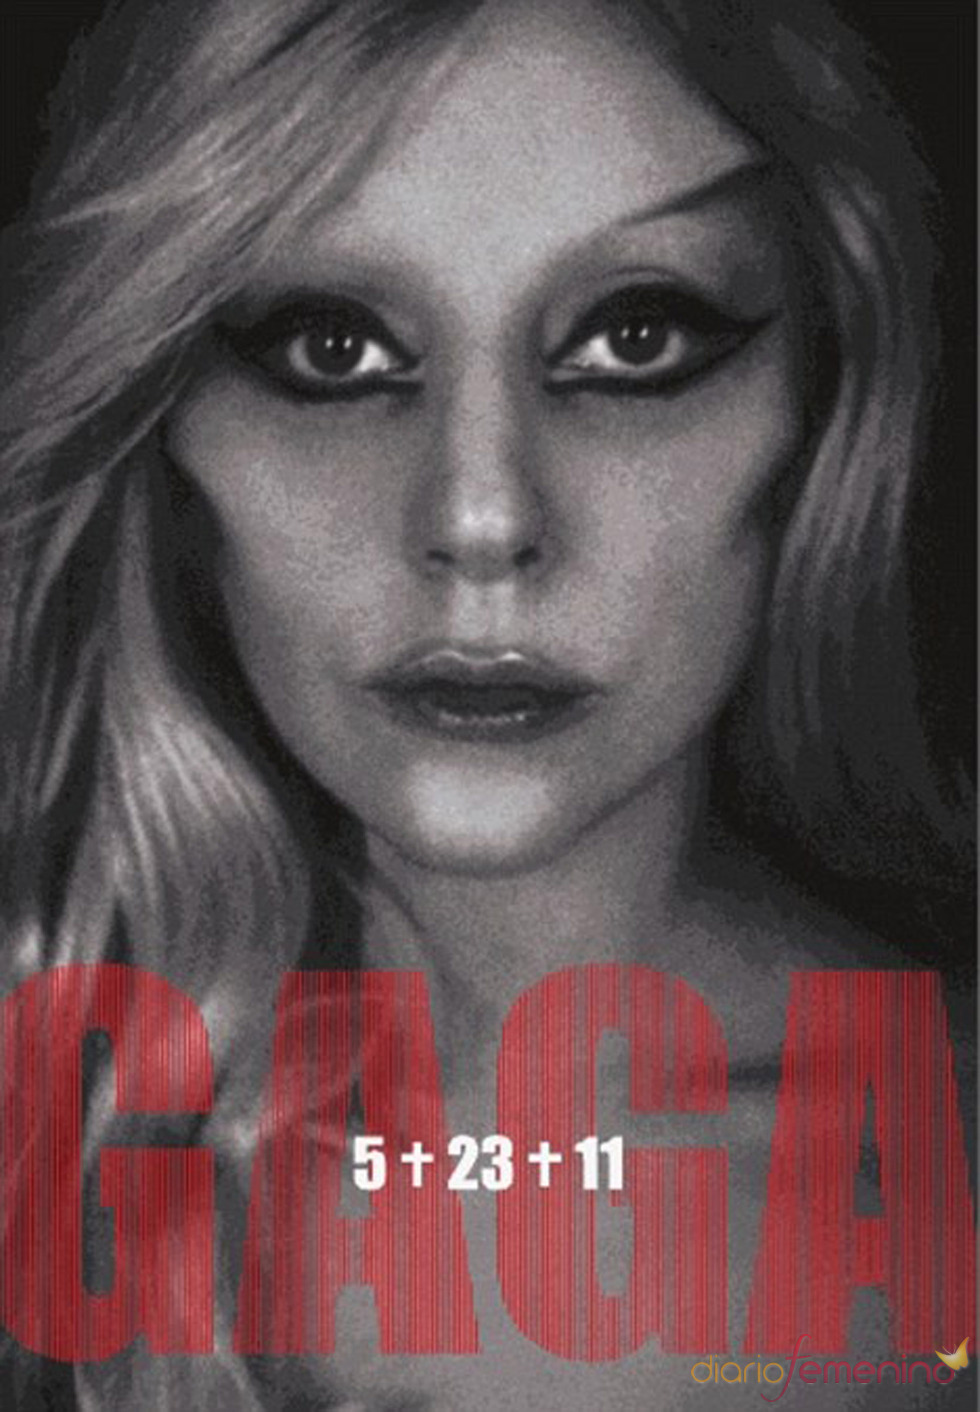 Una foto de Lady Gaga promocionando 'Born this way'